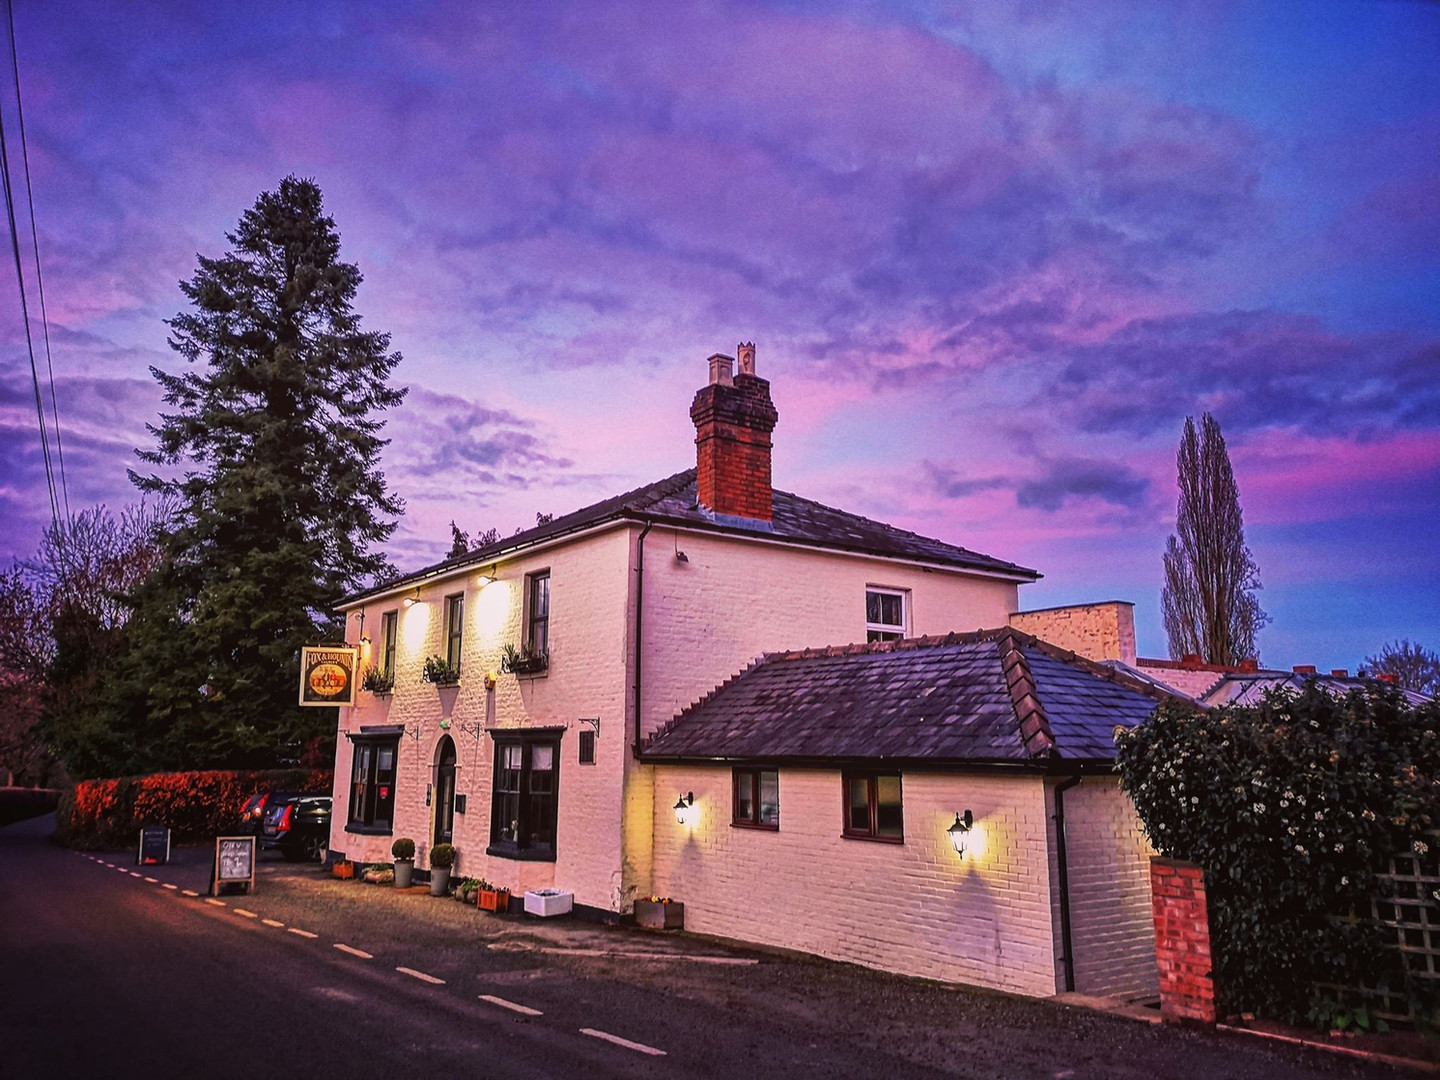 The Fox & Hounds at Lulsley Exterior